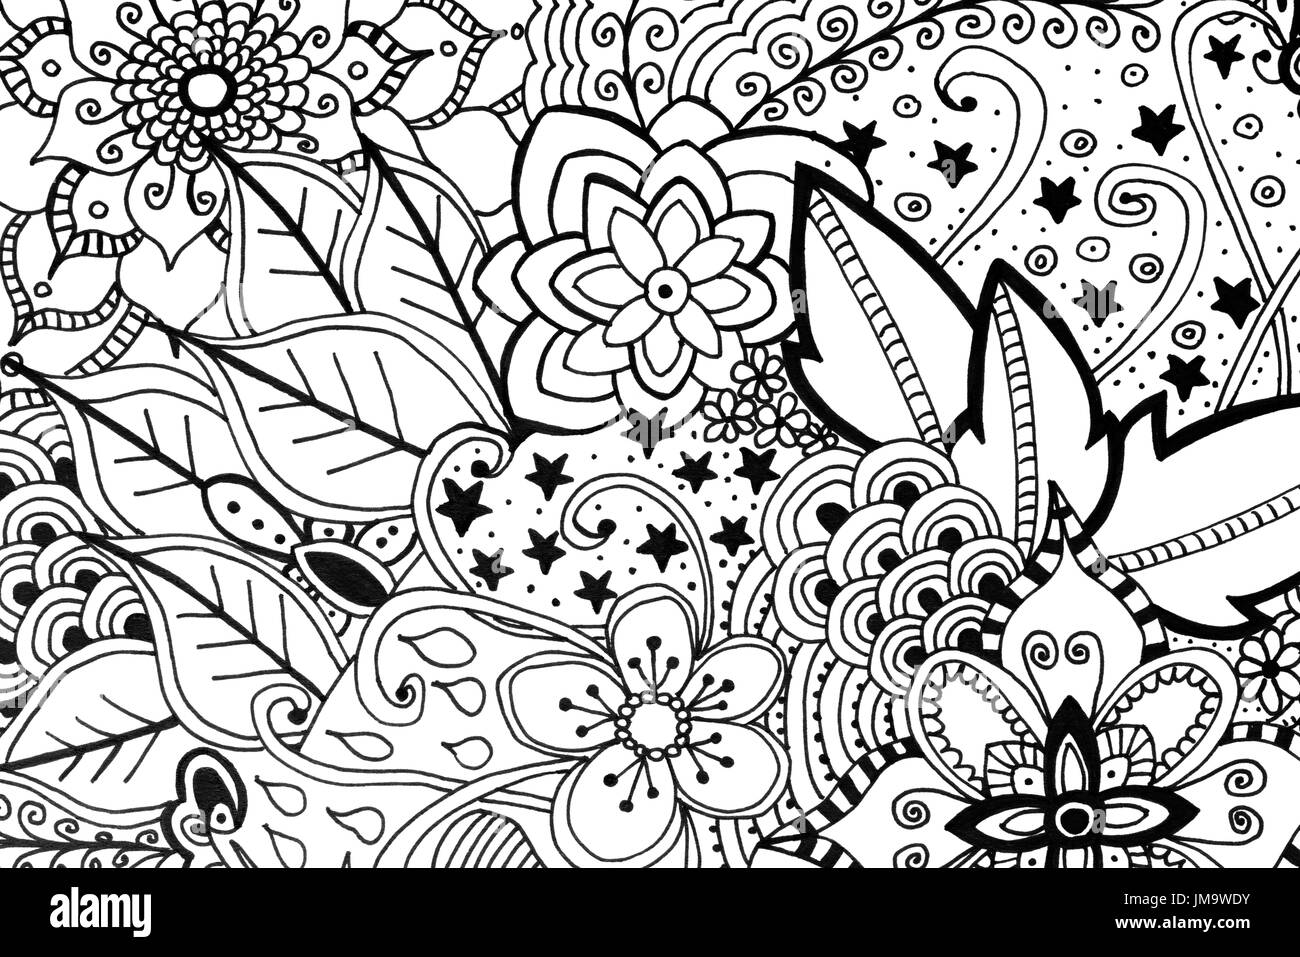 - Adult Colouring Book Hand Drawn Illustration, New Stress Relieving